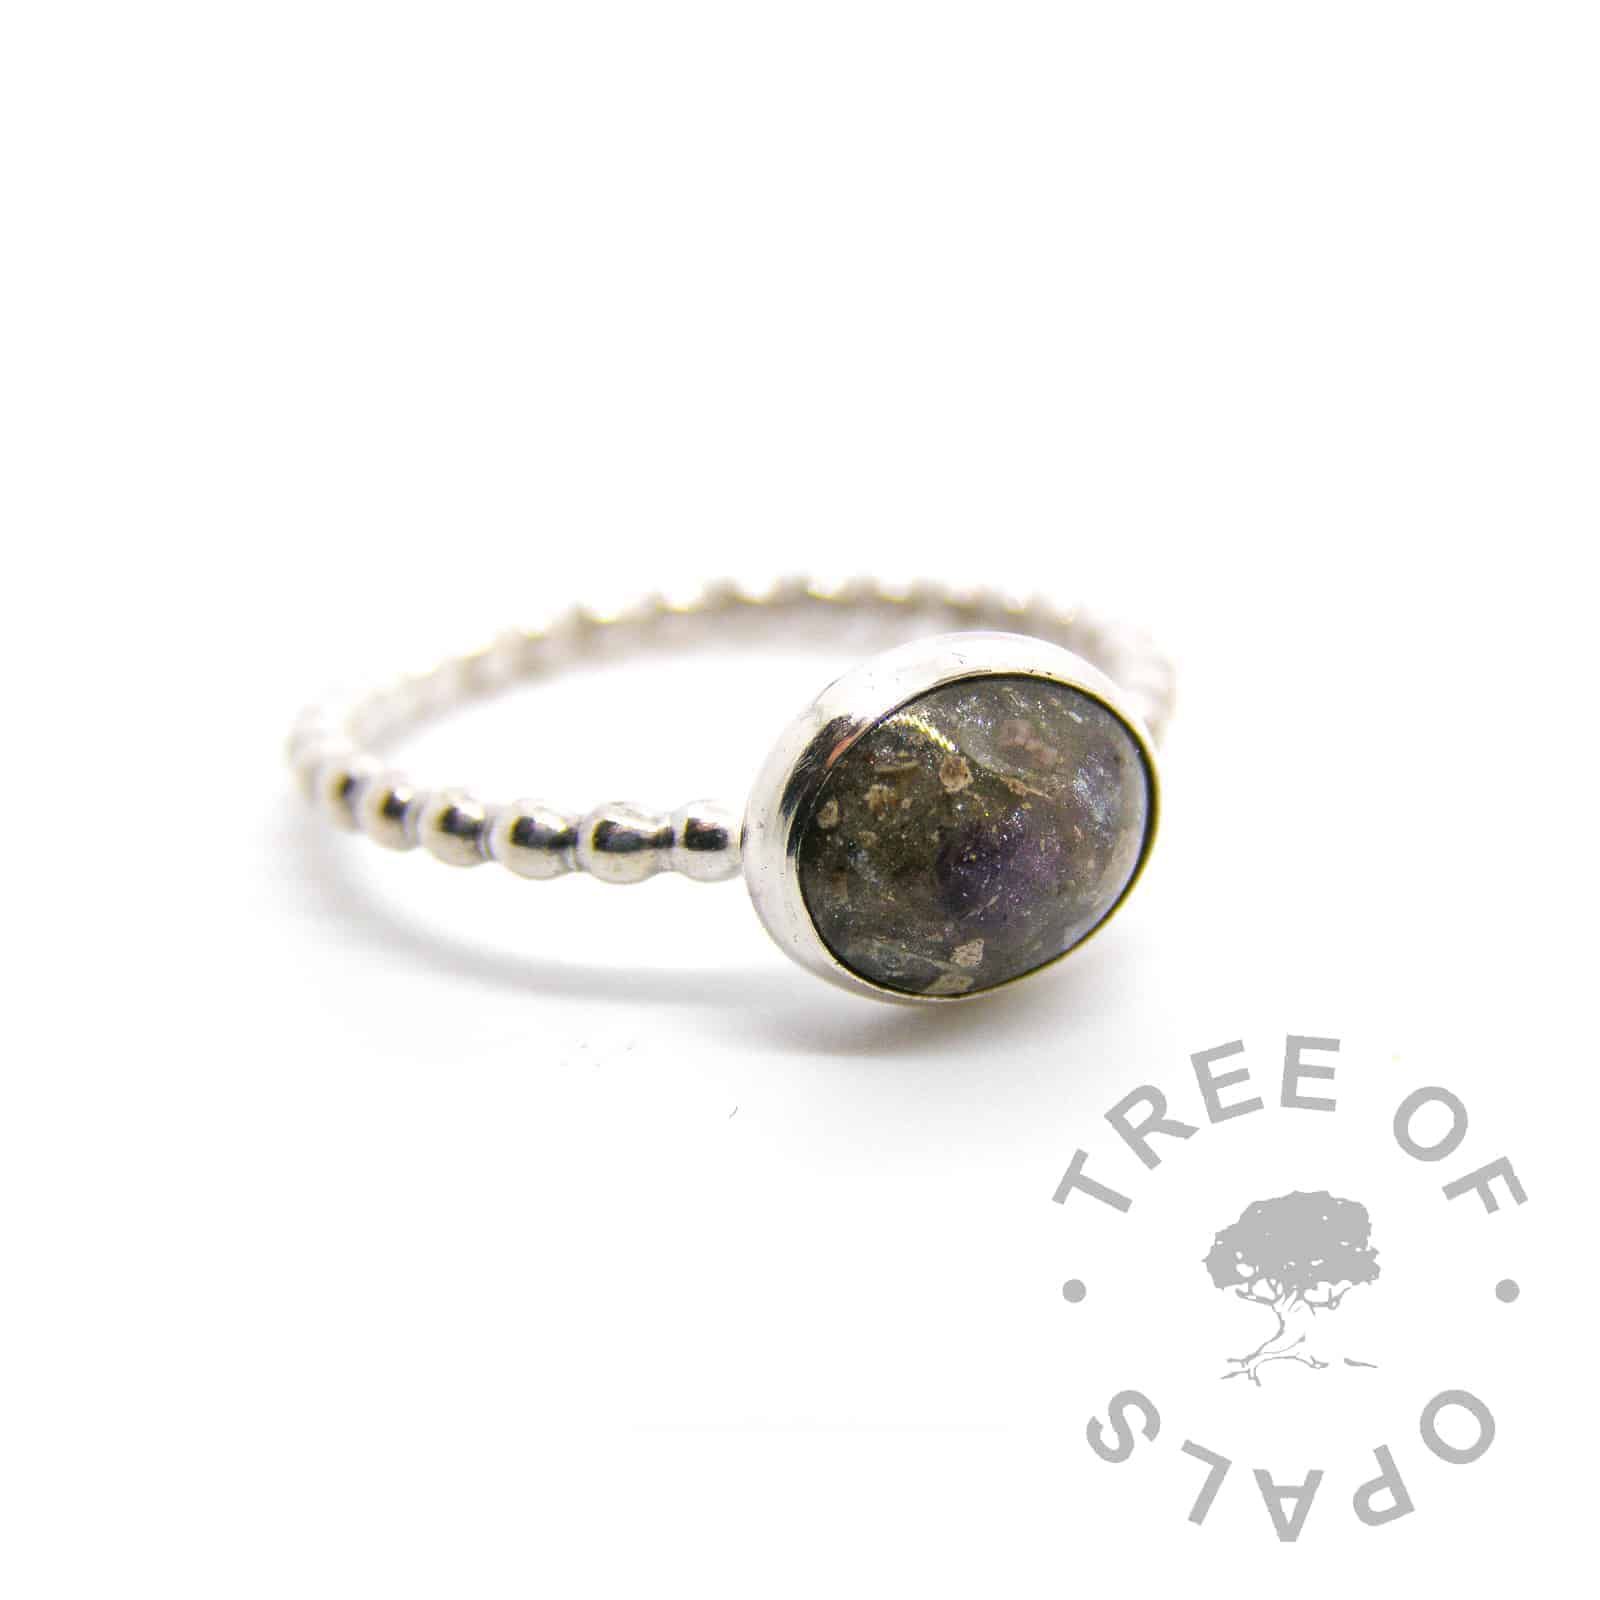 solid sterling silver cremation ash ring with basilisk green sparkles and February birthstone amethyst, set in a 10x8mm cabochon on a bubble wire band